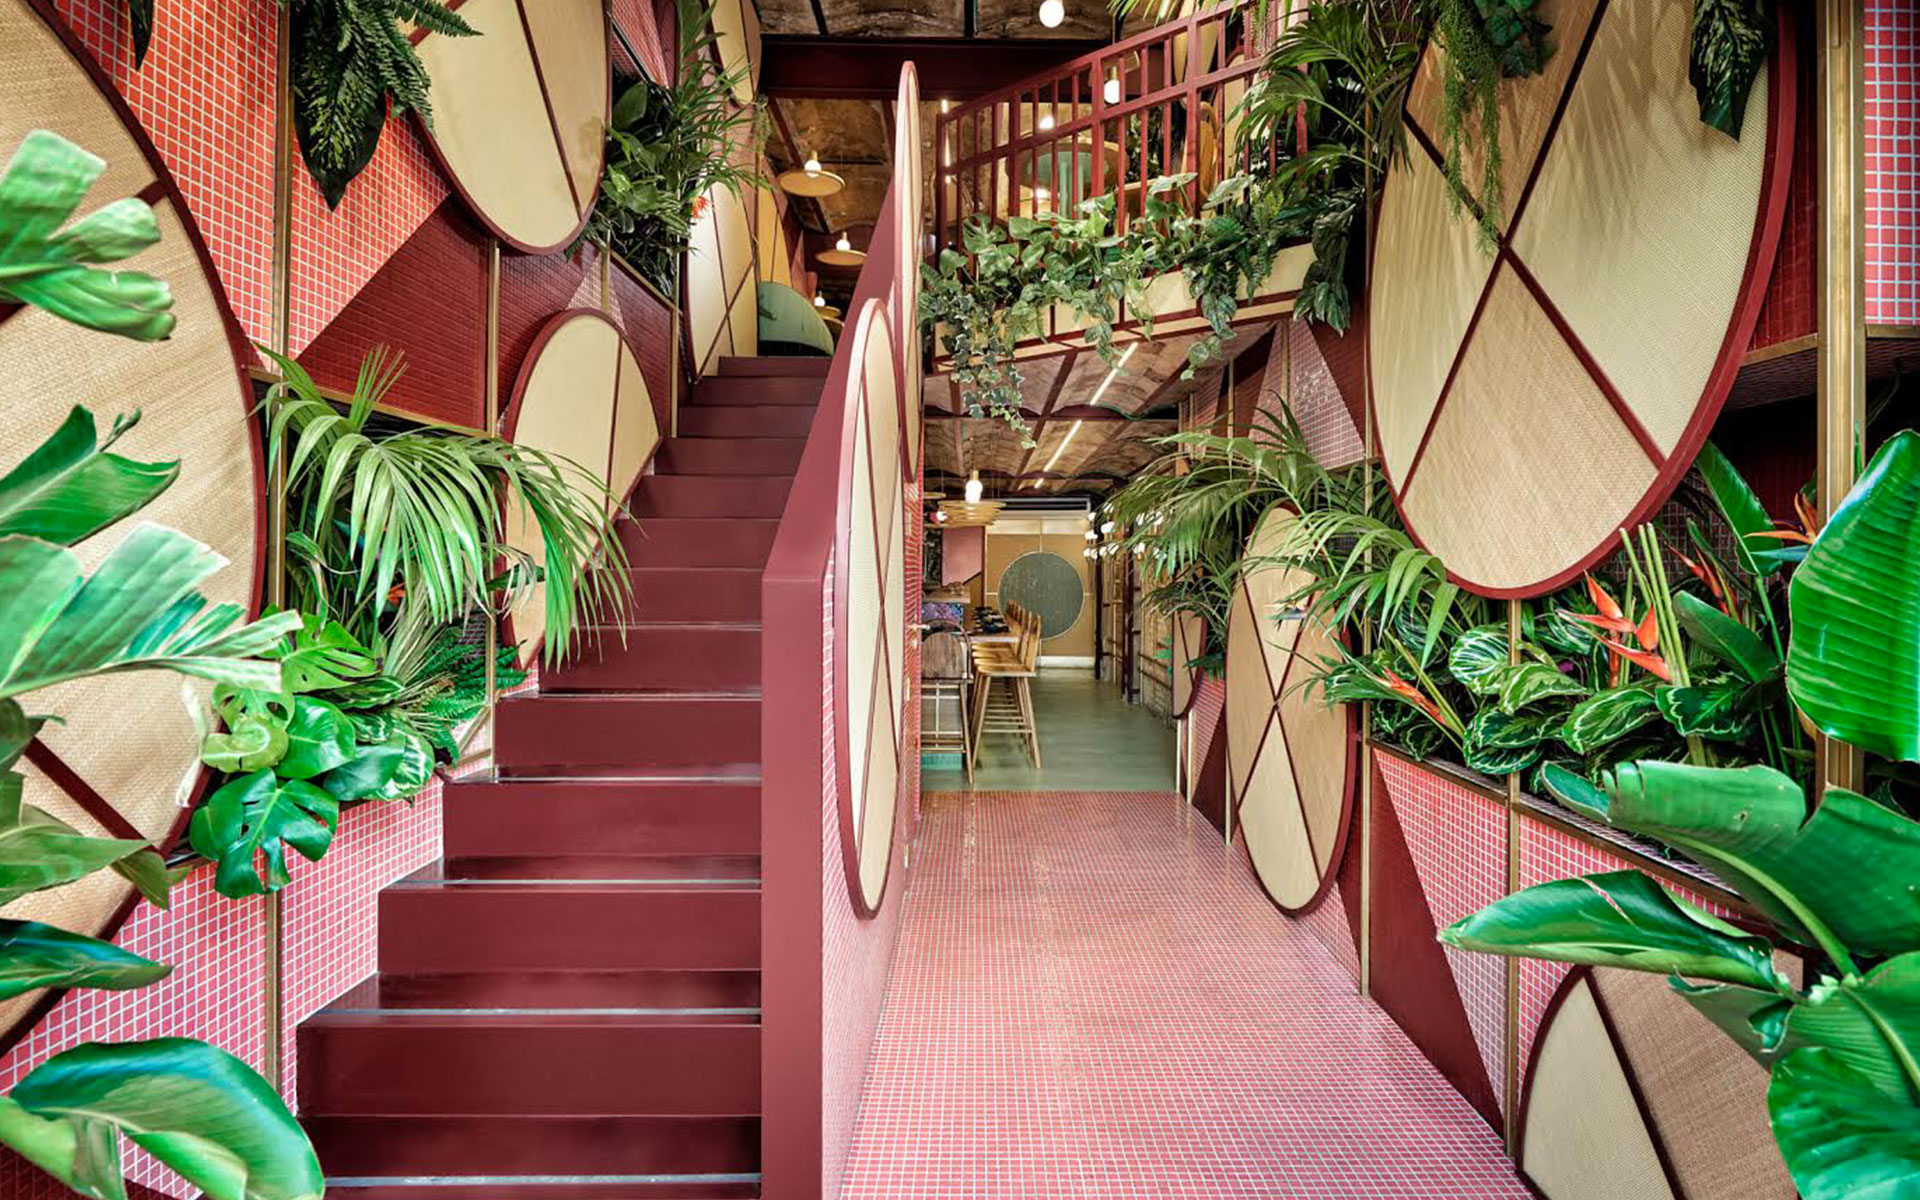 A Spanish tropical sushi restaurant designed by Masquespacio